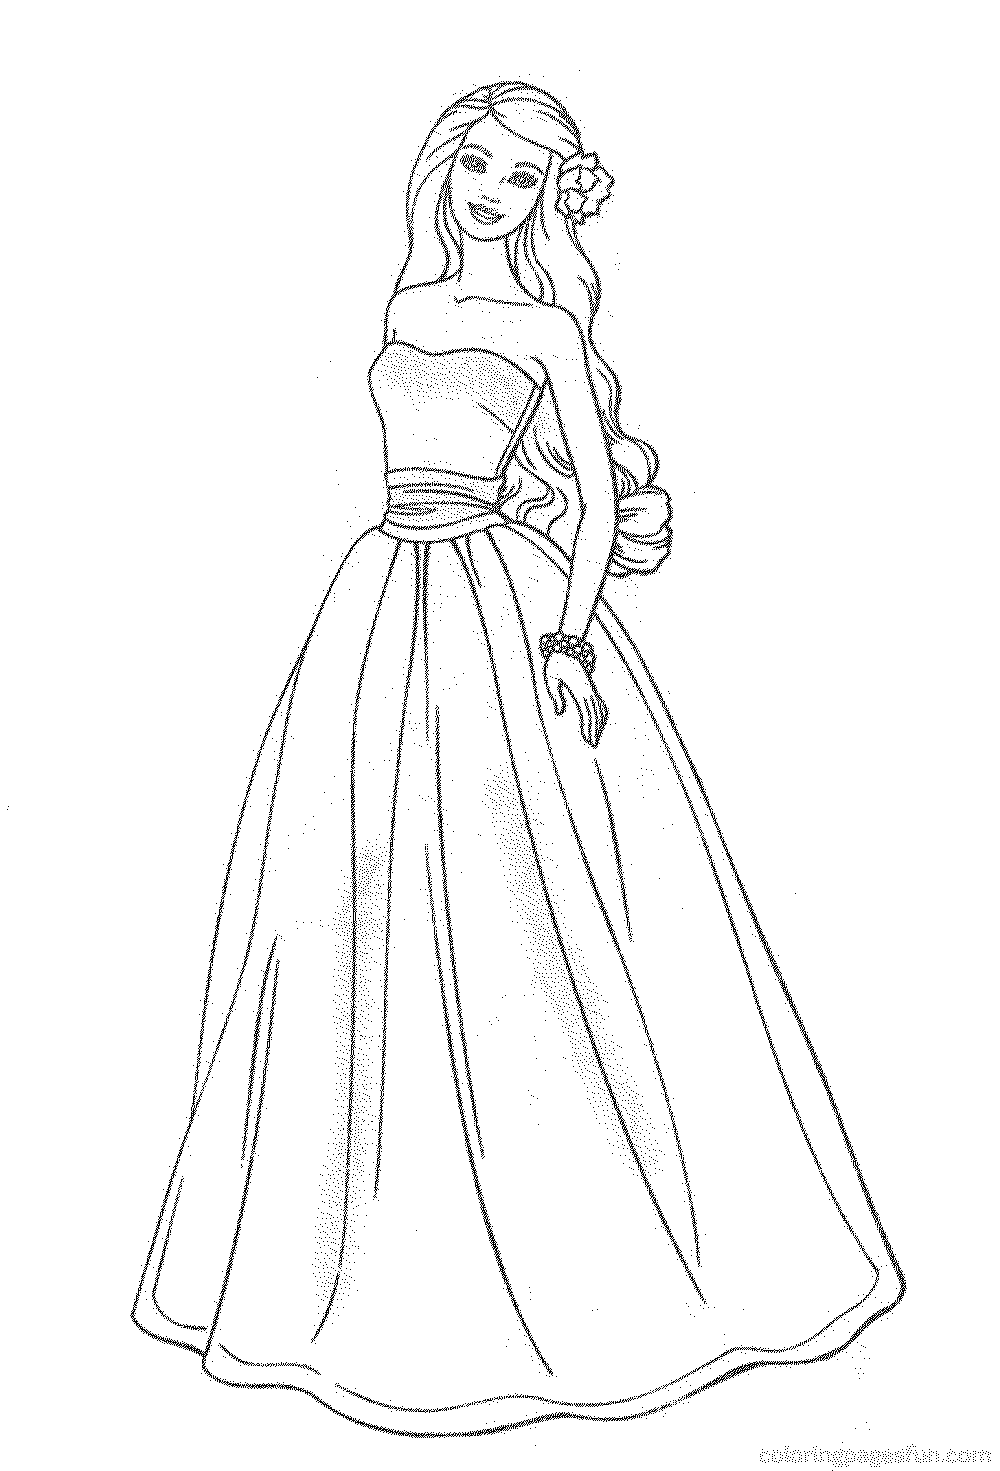 barbie coloring pages online - Printable Kids Colouring Pages